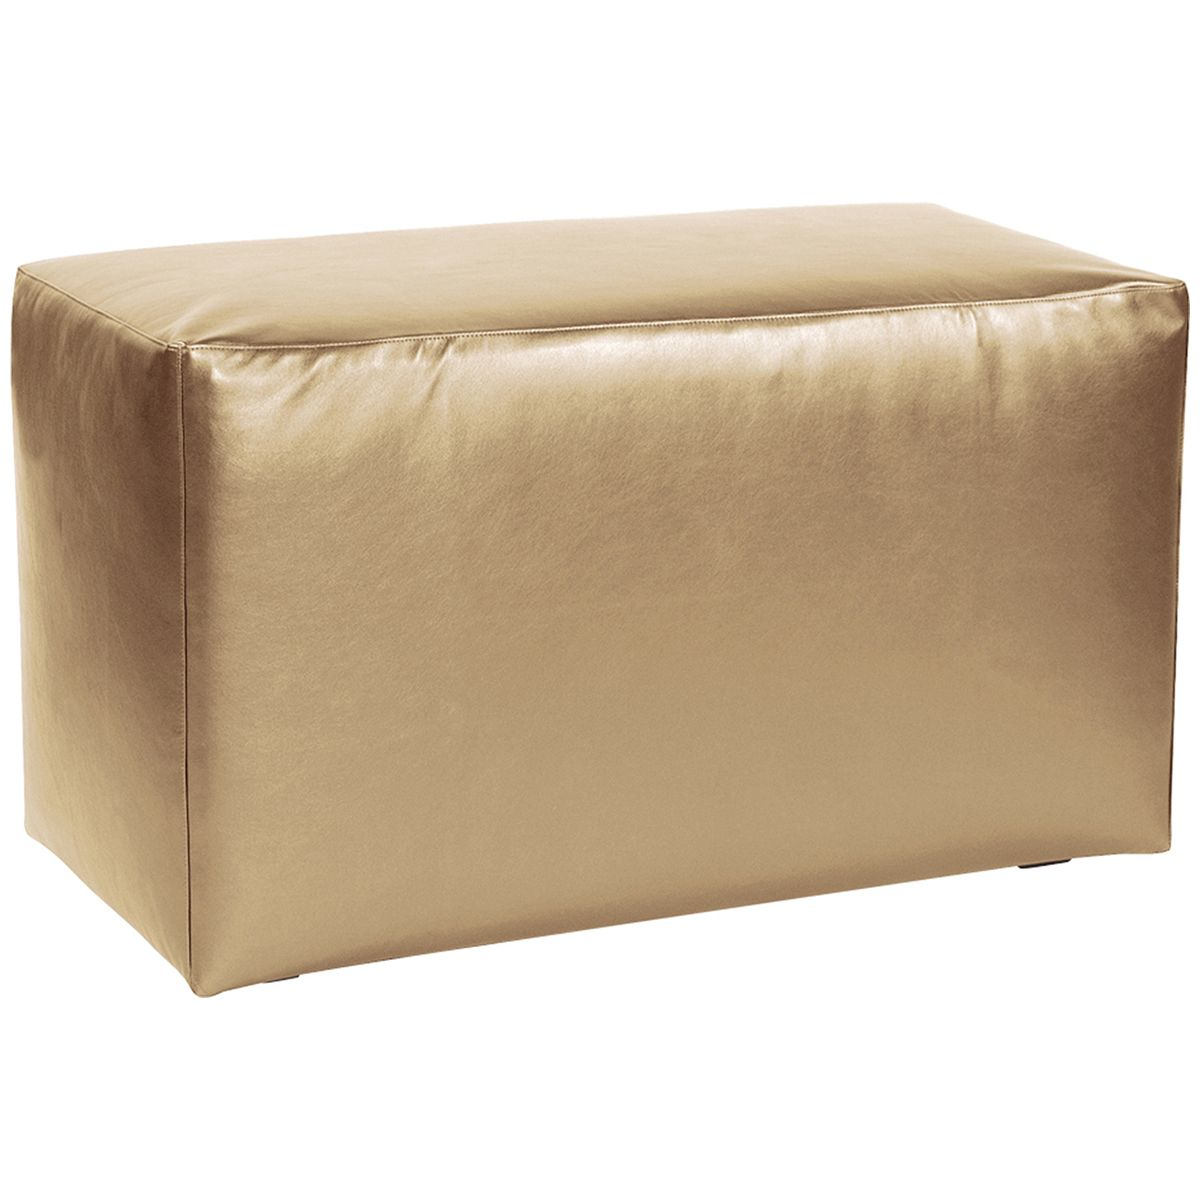 Howard Elliott Shimmer Gold Universal Bench 130 880 Bench Covers Furnishings Diy Curved Bench